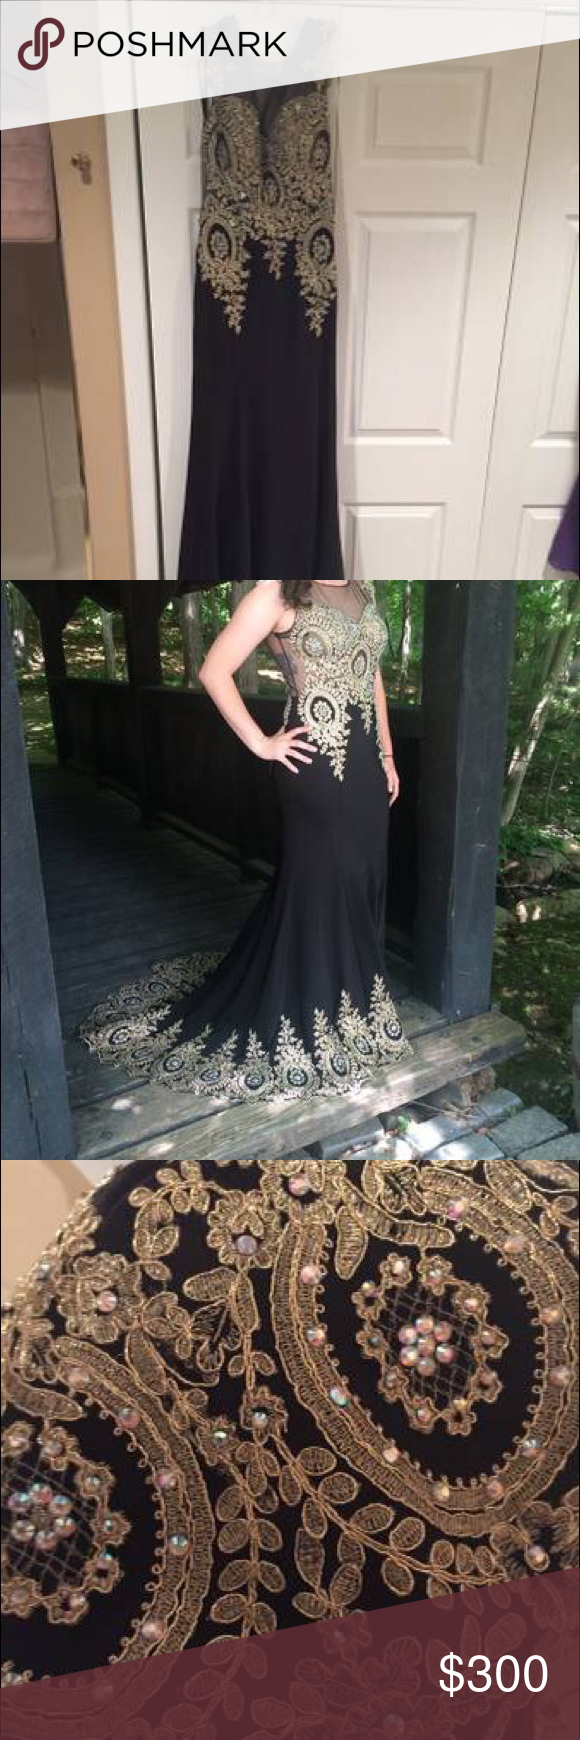 Black And Gold Prom Dress Evening Gown Gold Prom Dresses Evening Dresses Prom Prom Dresses [ 1740 x 580 Pixel ]